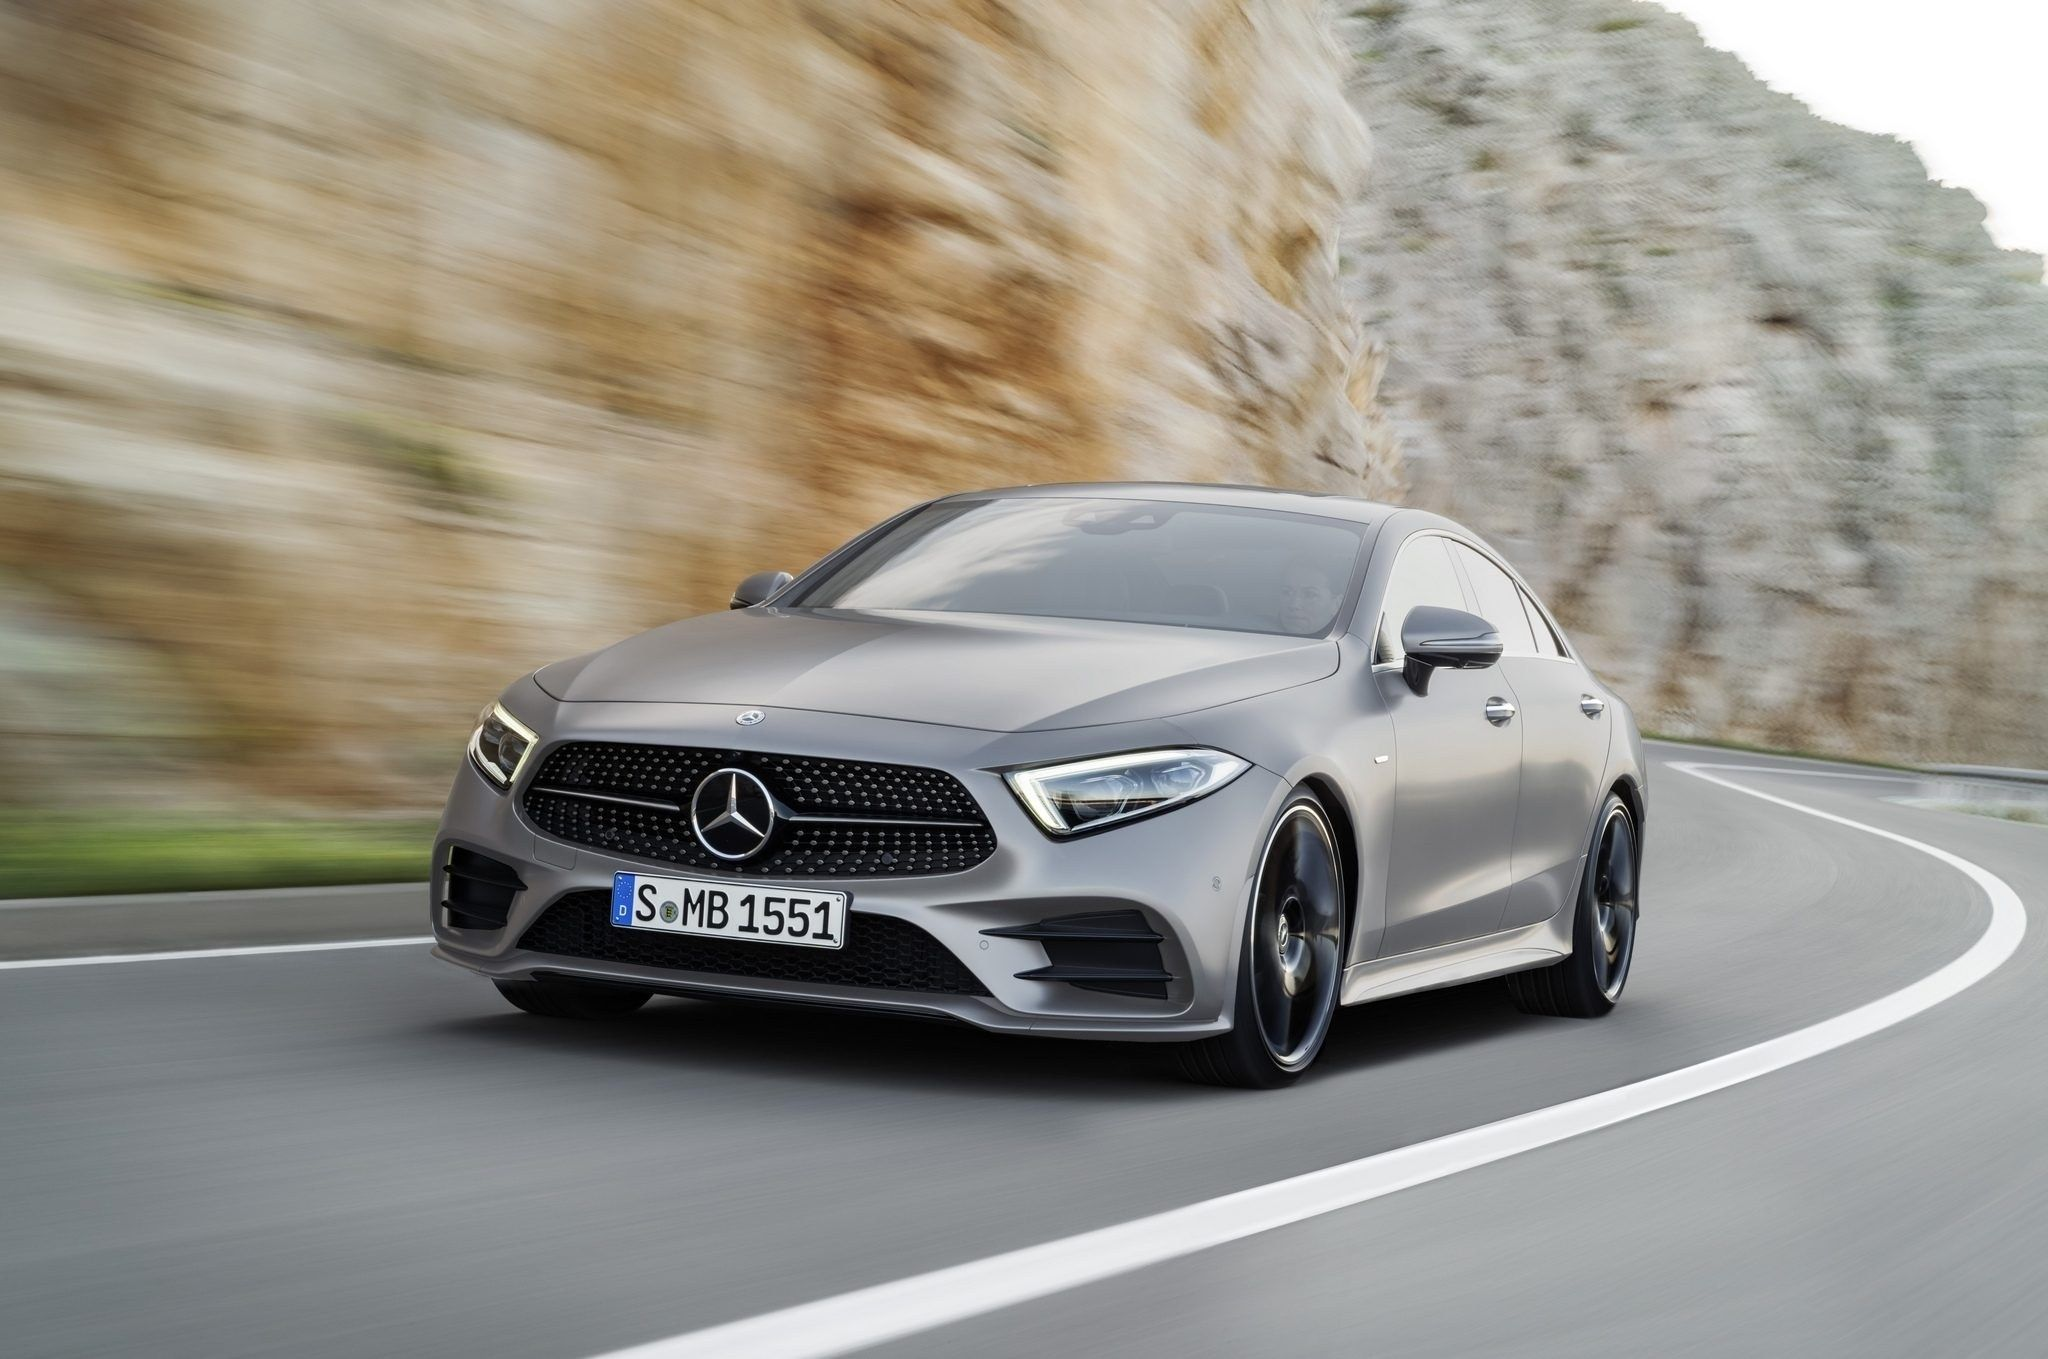 The 2020 Mercedes Benz Cls 53 Redesign Price And Review Conceptcars On Review Cars On Review Mercedes Cls Mercedes Benz Cls Benz